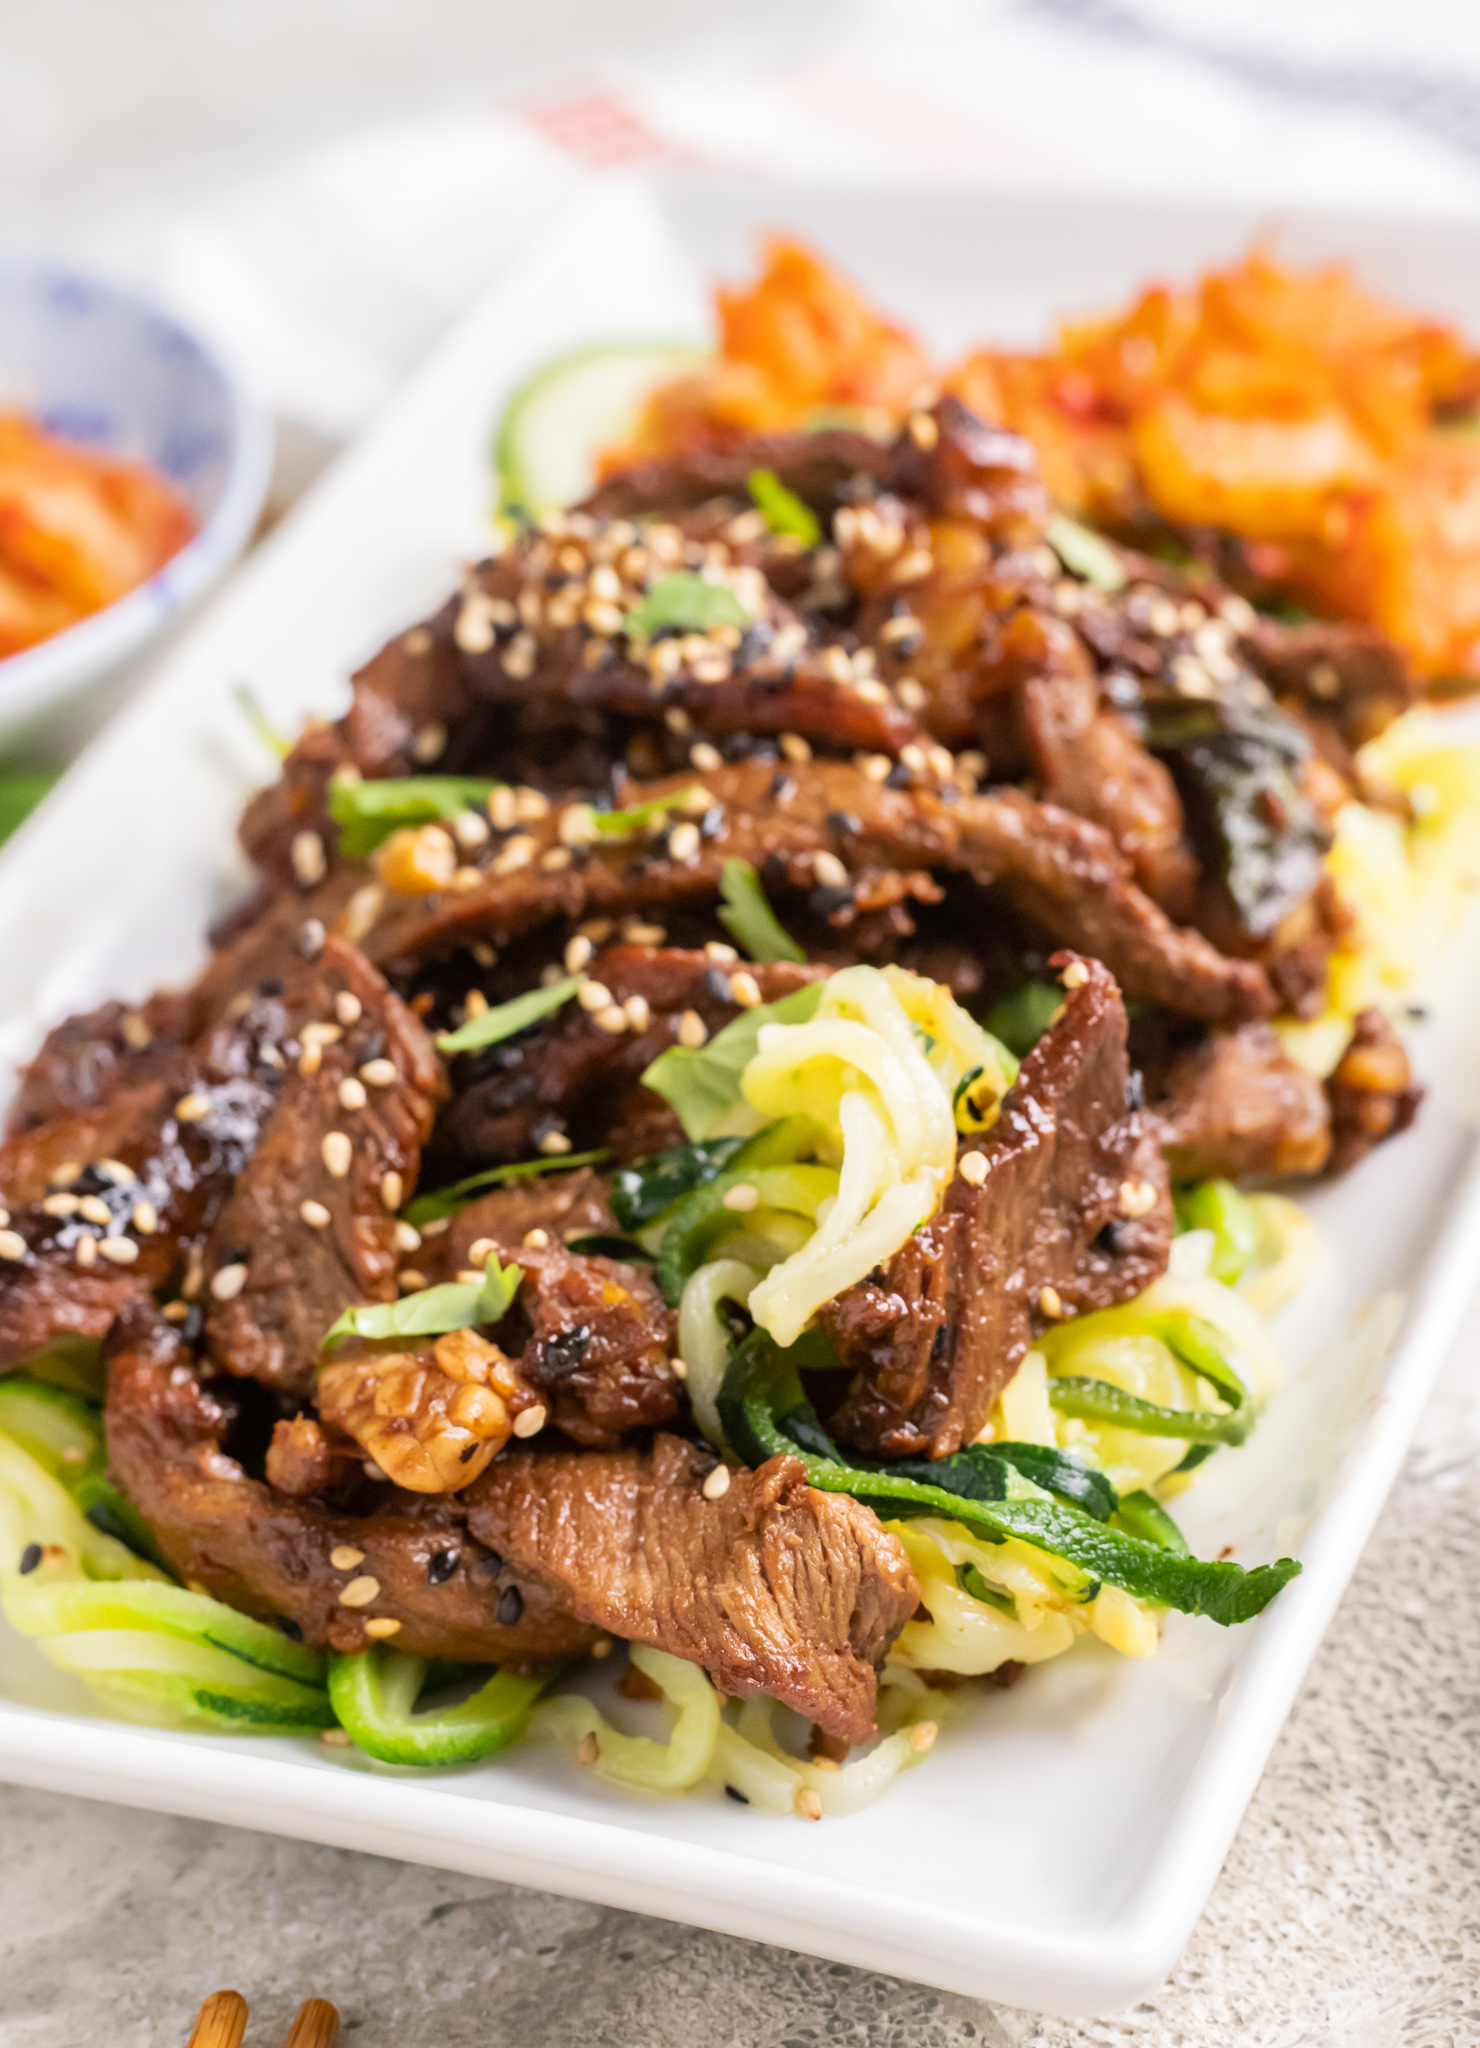 Beef Bulgogi with Zucchini Noodles on a white plate.